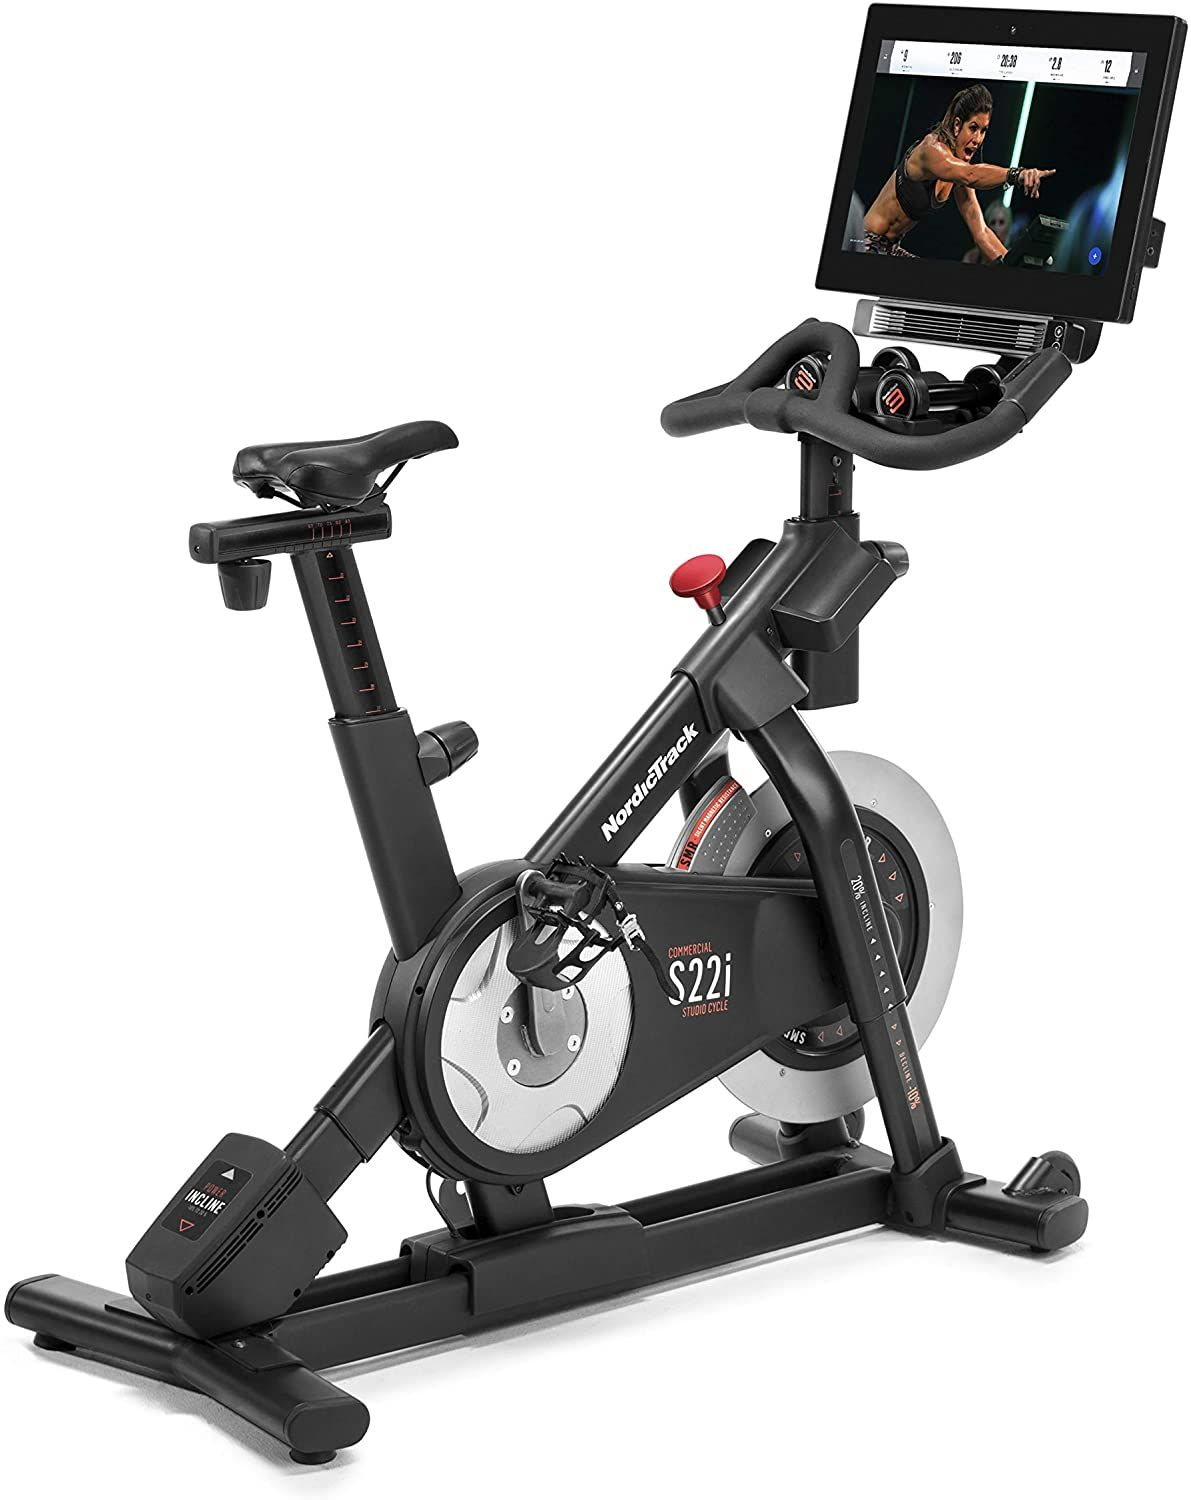 Nordictrack Commercial Studio Cycle S15i And S22i Includes 1 Year Ifit Membership In 2020 Biking Workout Best Exercise Bike Exercise Bike Reviews